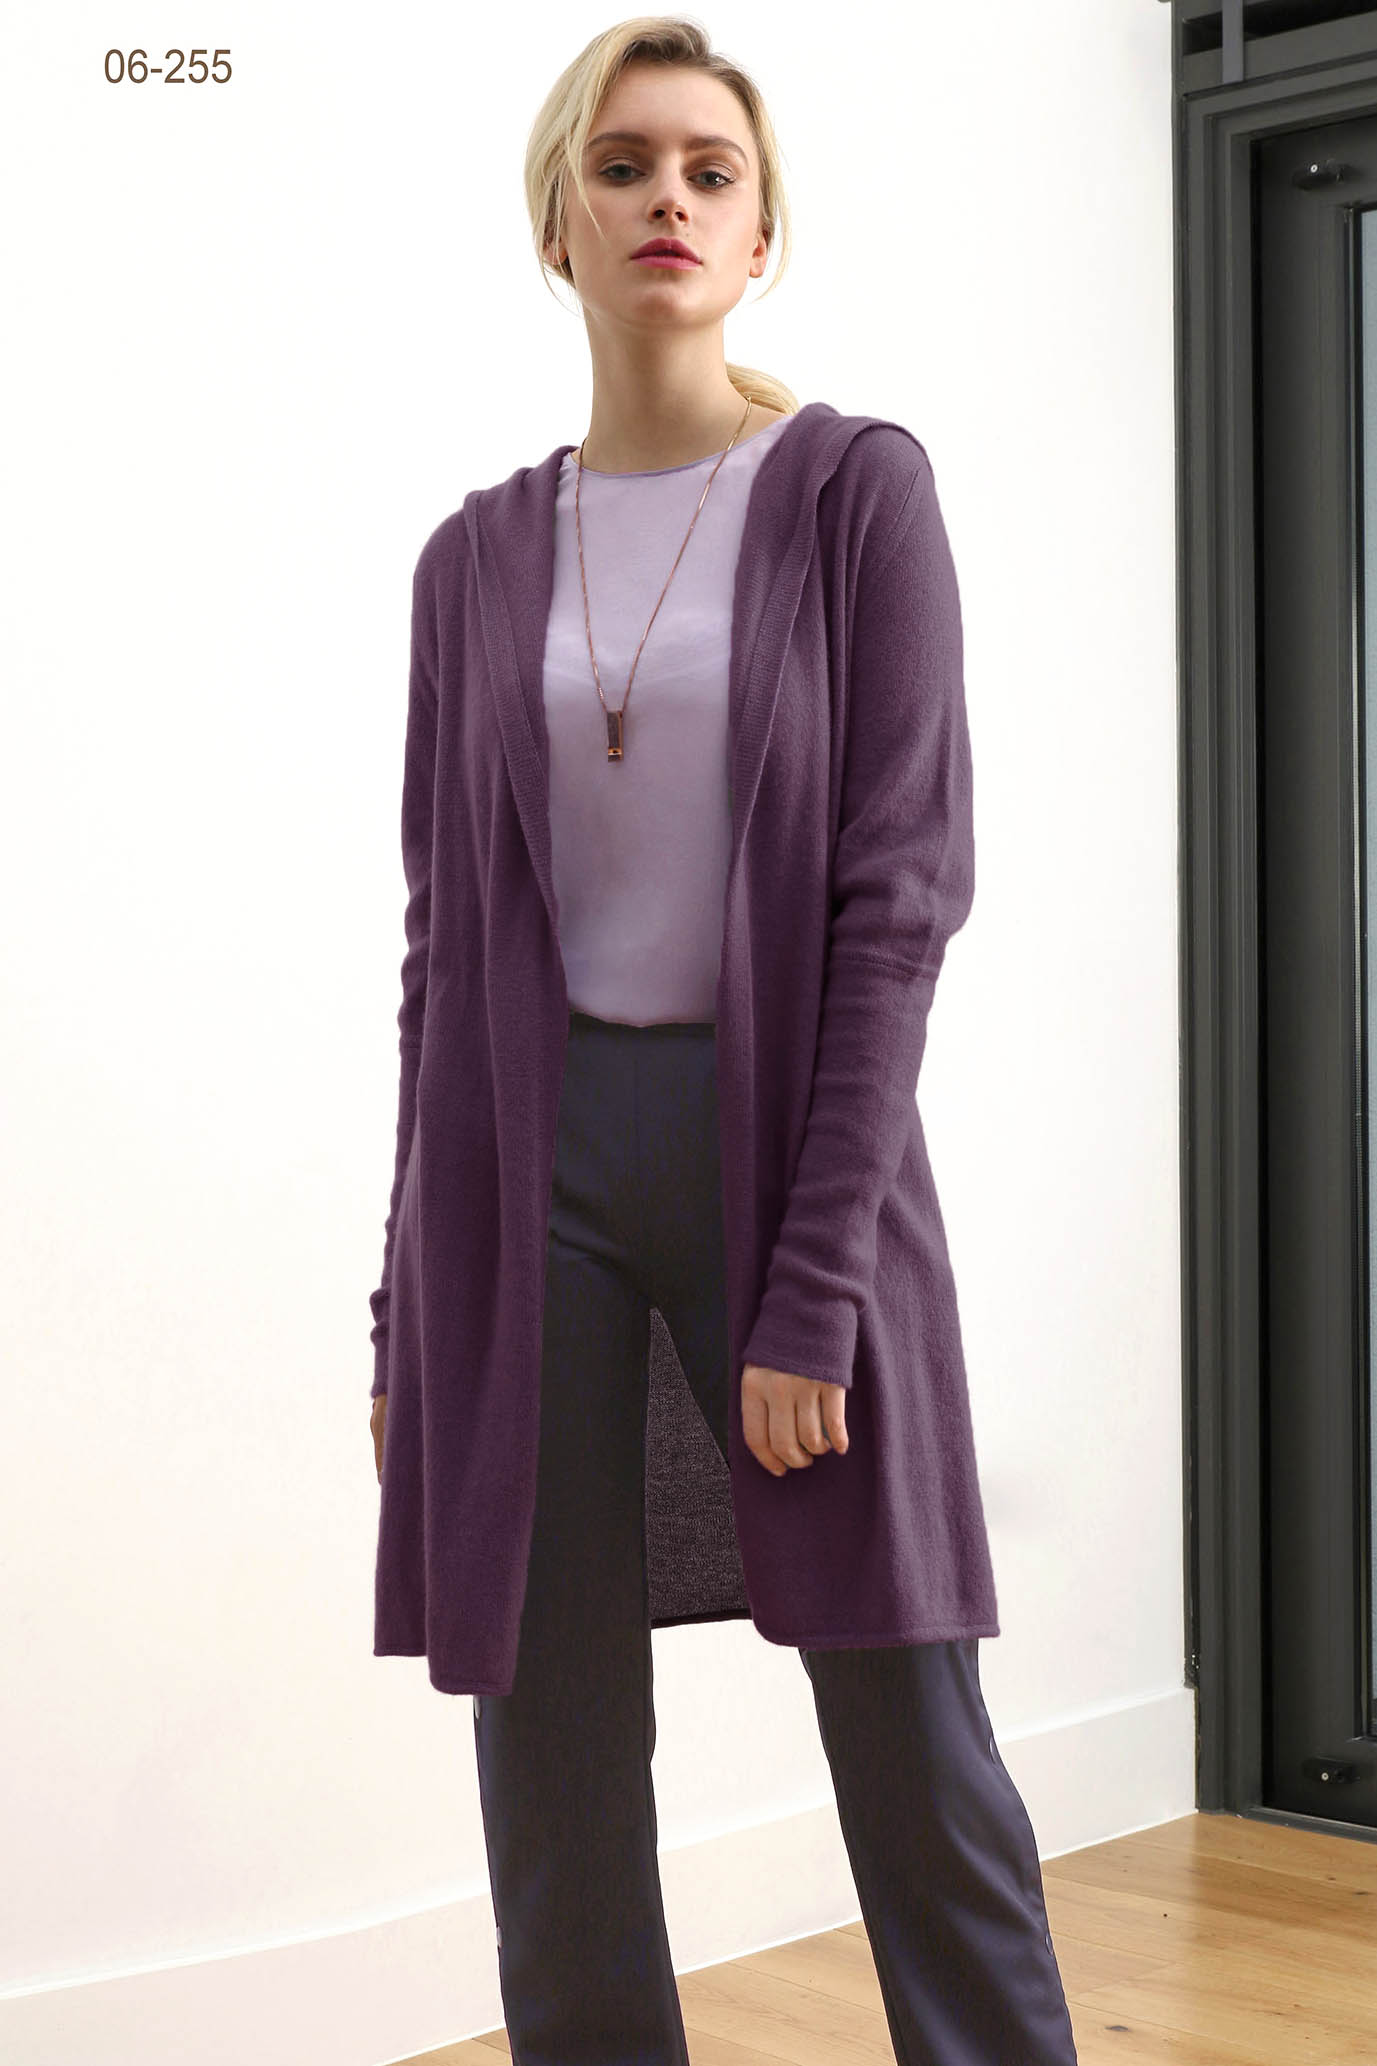 Long open hooded cashmere cardigan, cashmere Hoodie womens, plum purple cashmere cardigan | SEMON Cashmere